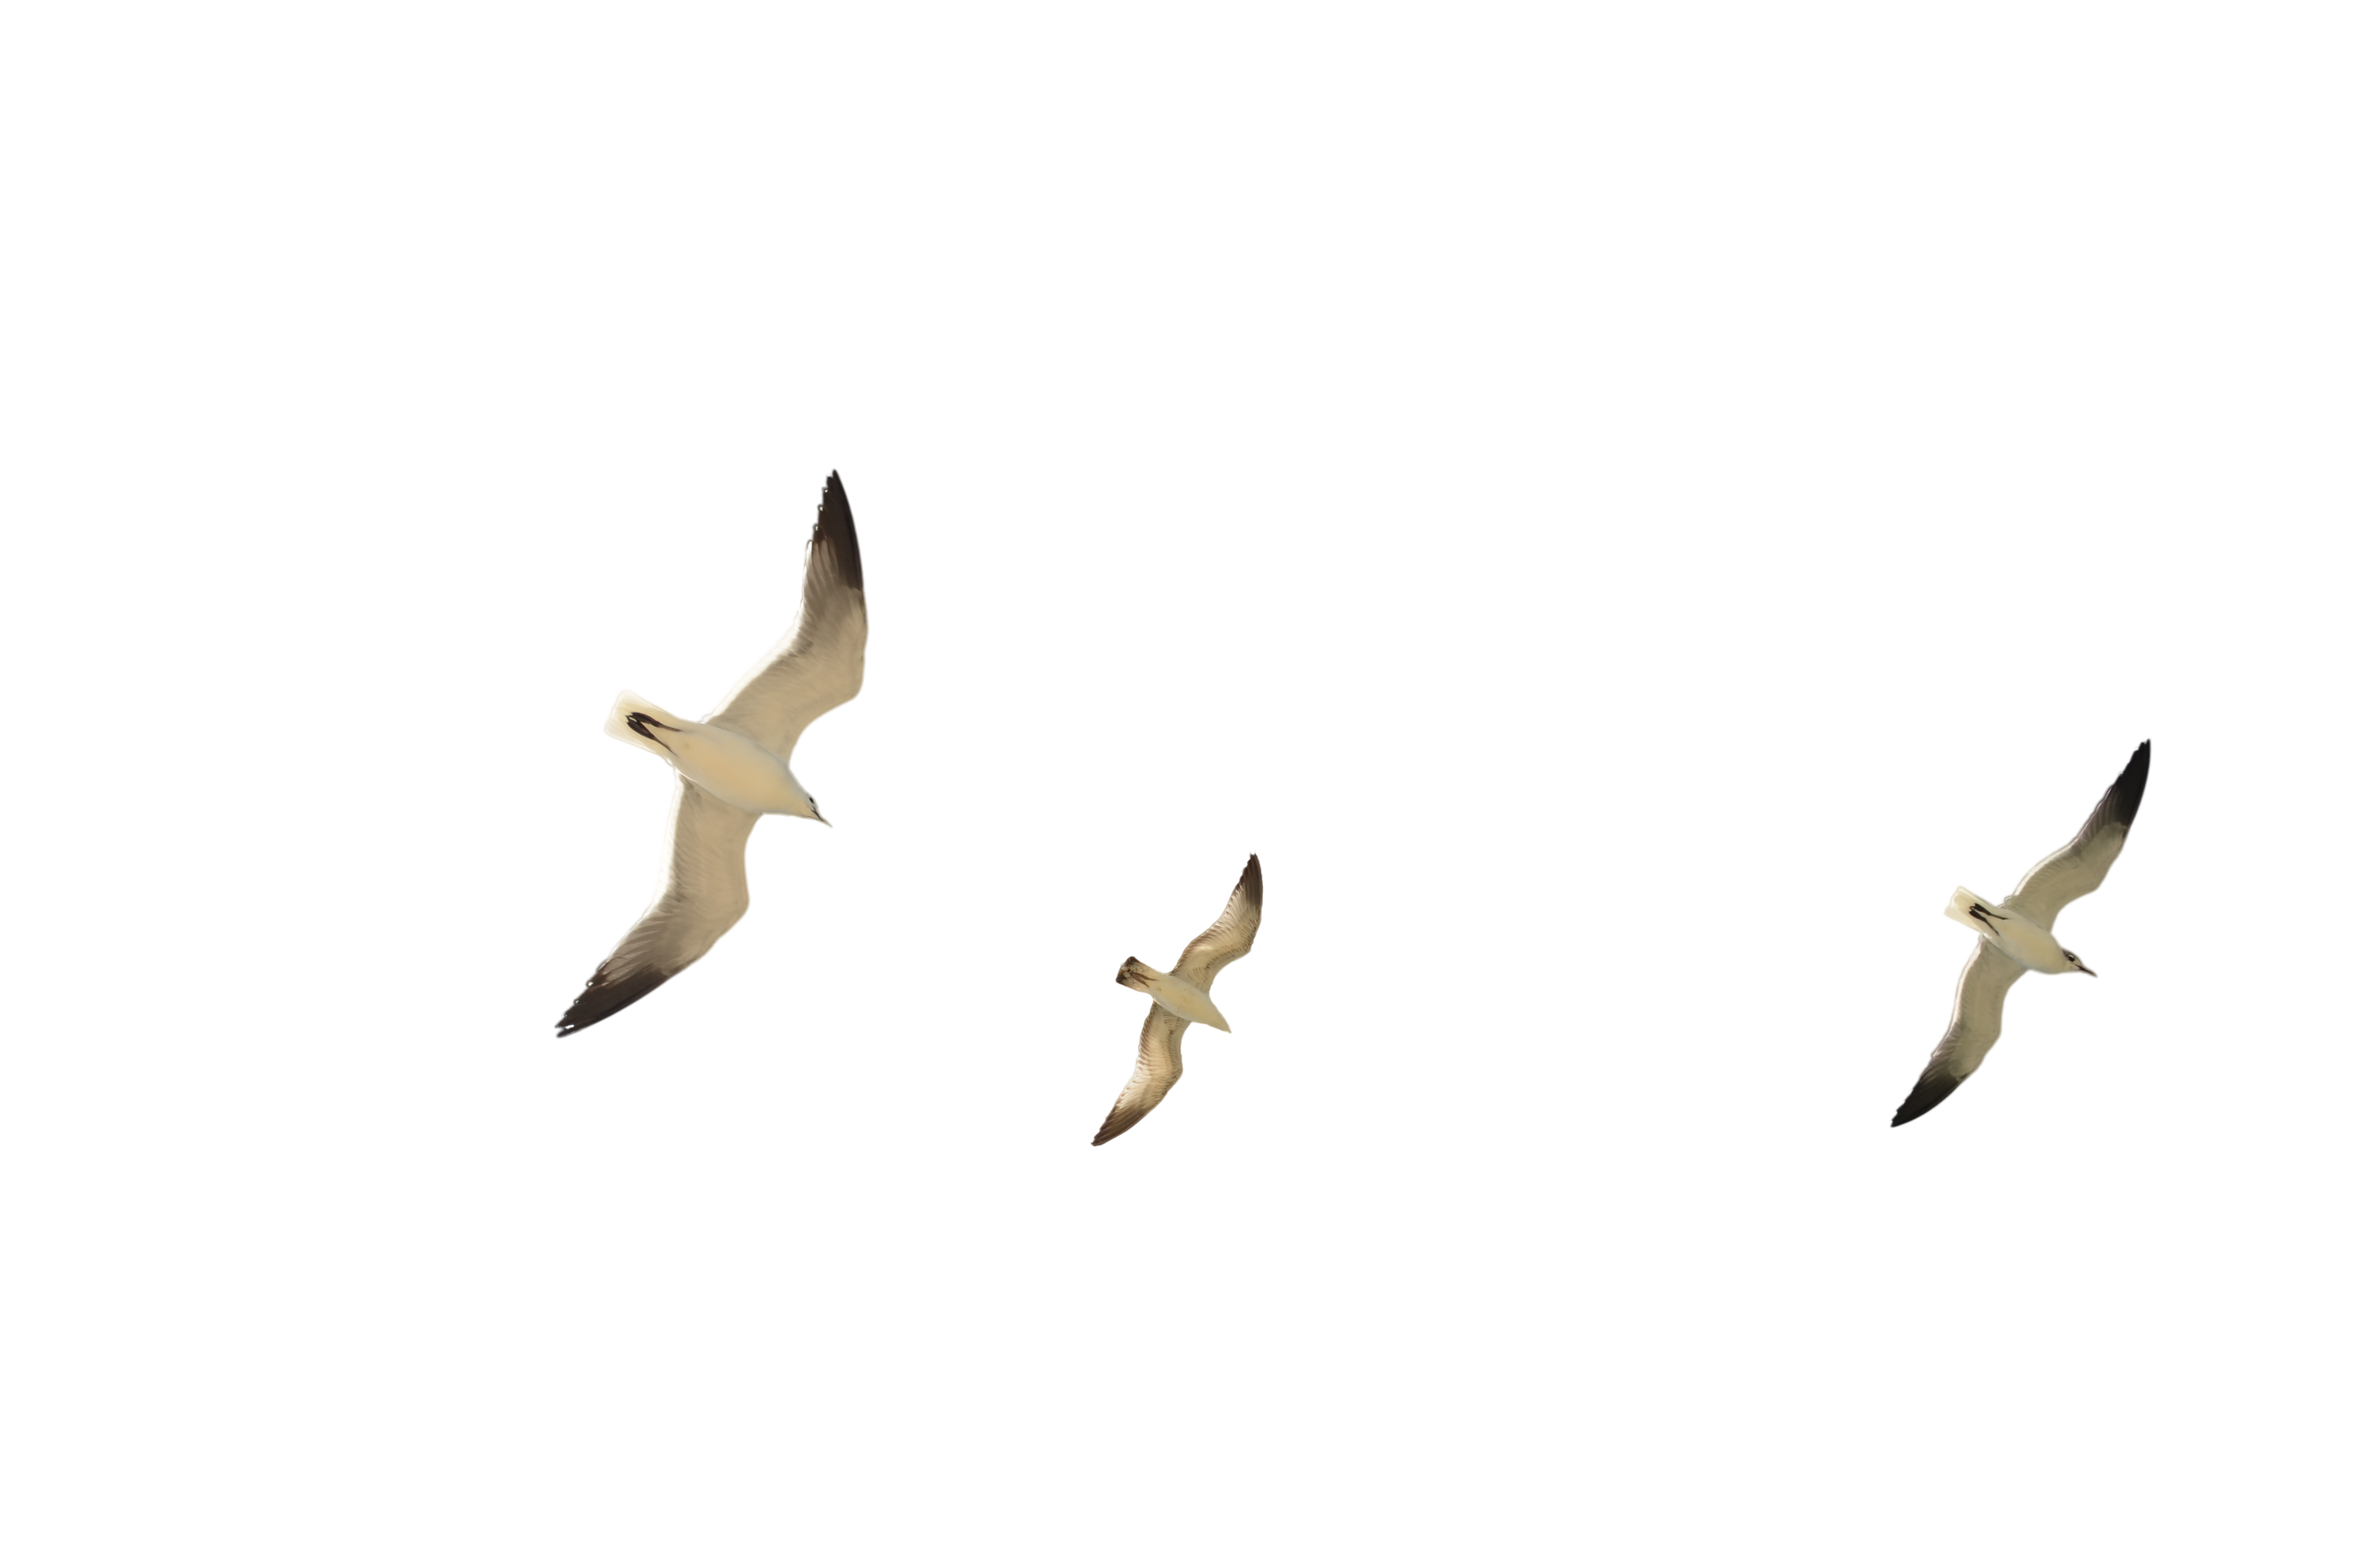 Flock of SeaGulls Stock Photo DSC 0408 PNG by annamae22 on